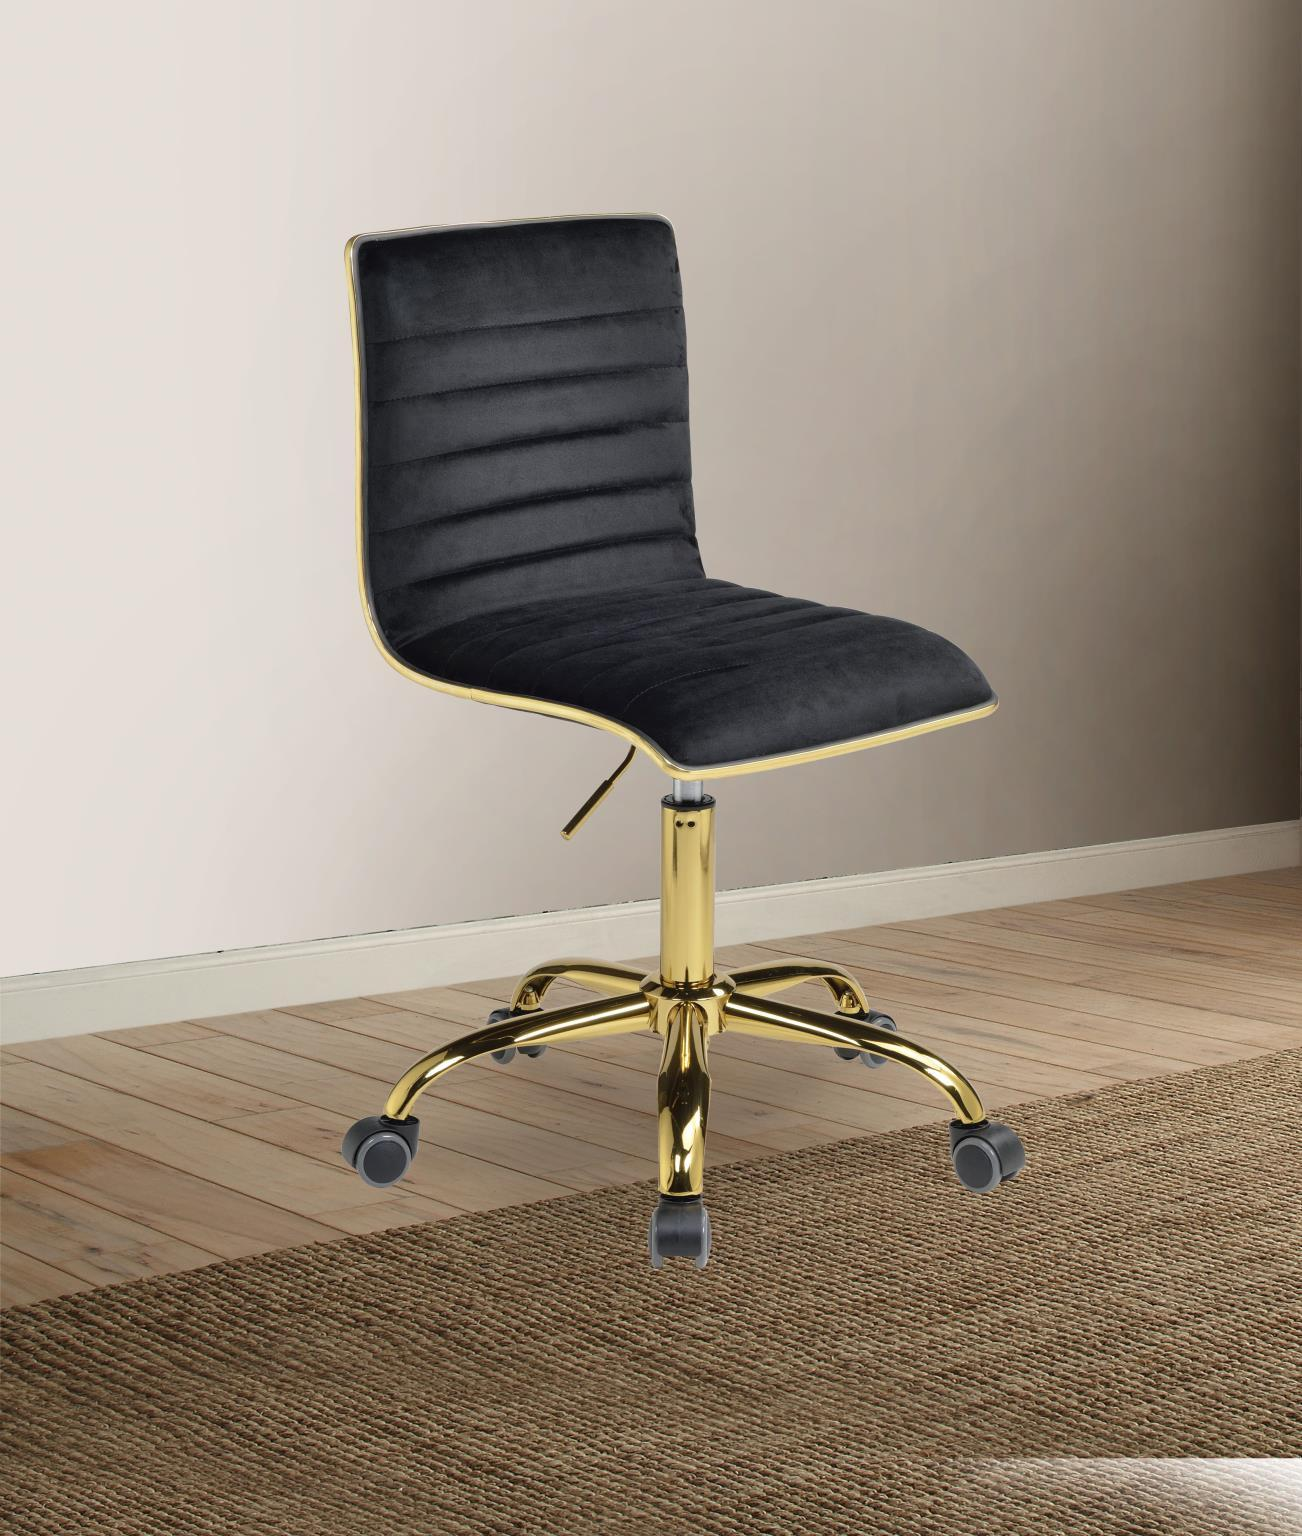 Home Office Chair Black Velvet Gold Alessio 92516 Acme Contemporary Modern Alessio 92516 Buy Online